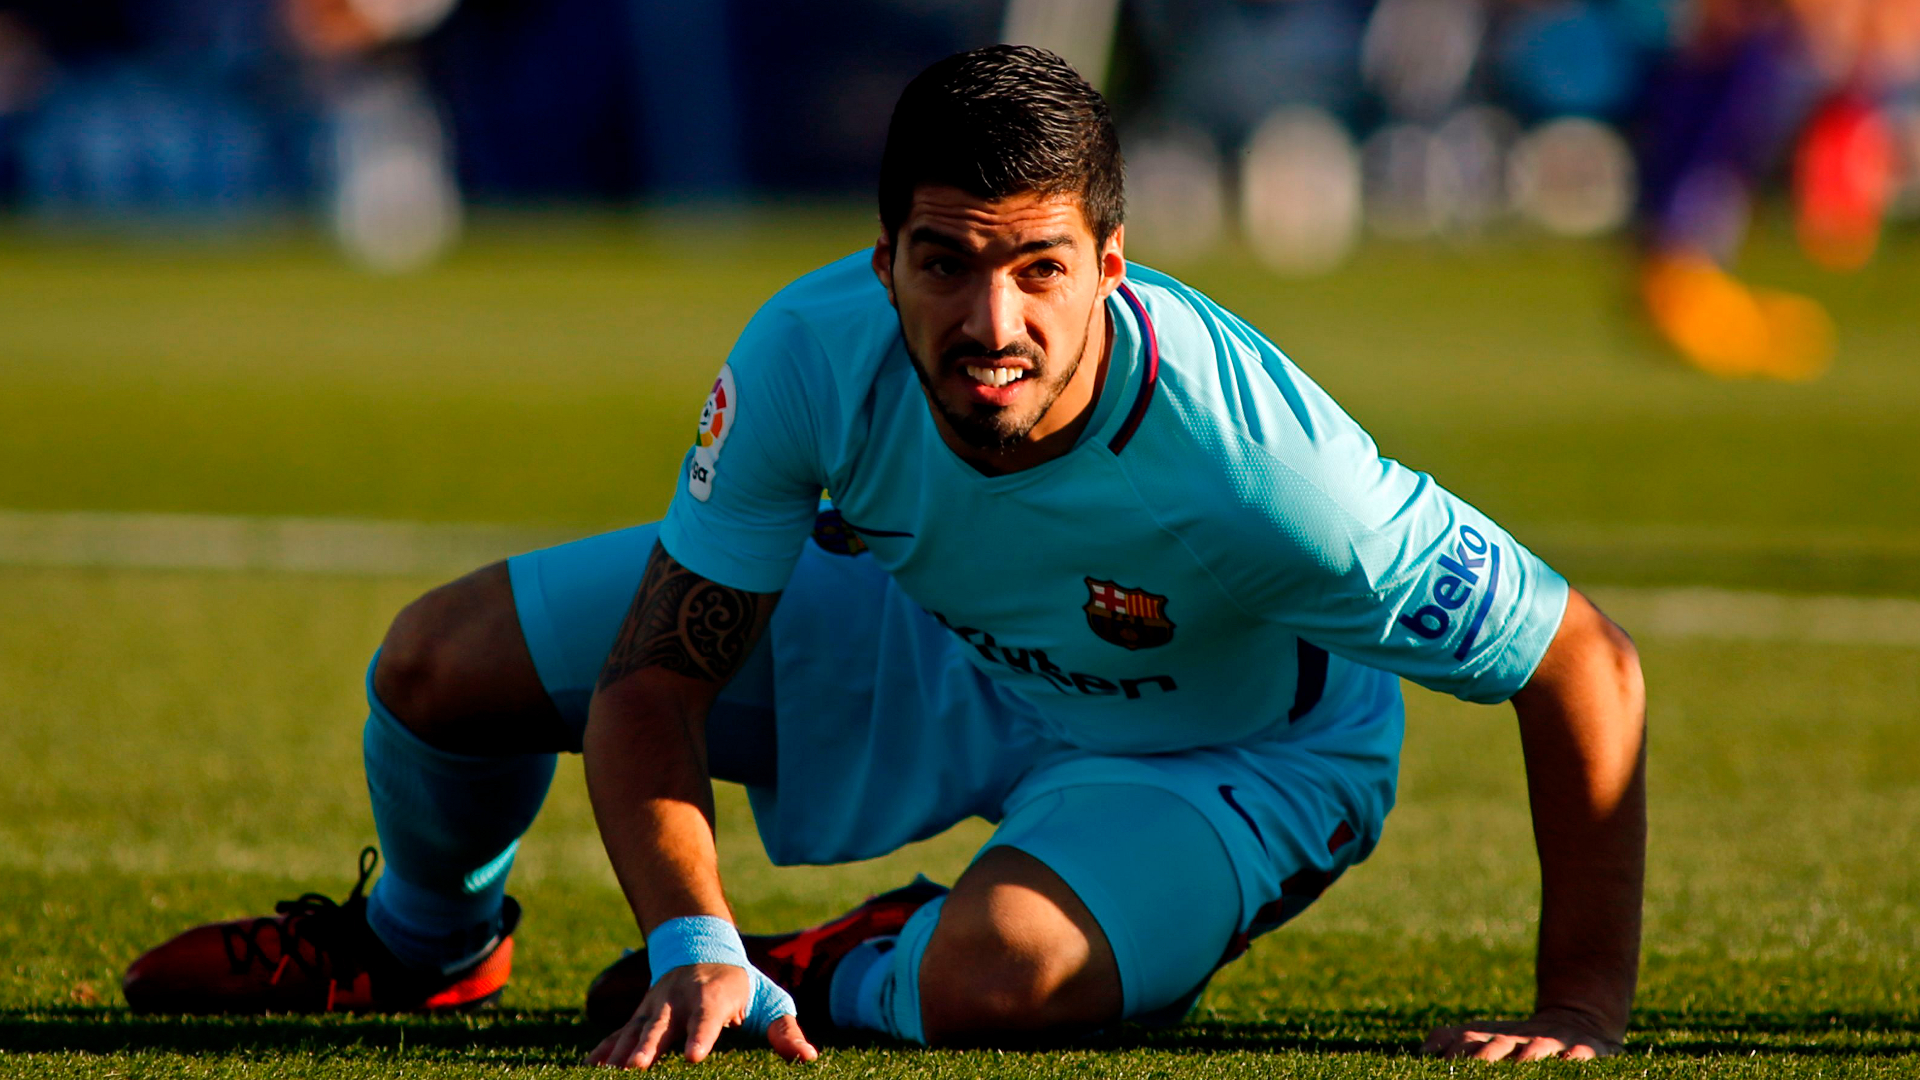 Barcelona: Luis Suarez ends goal drought as Barca beat Leganes 3-0